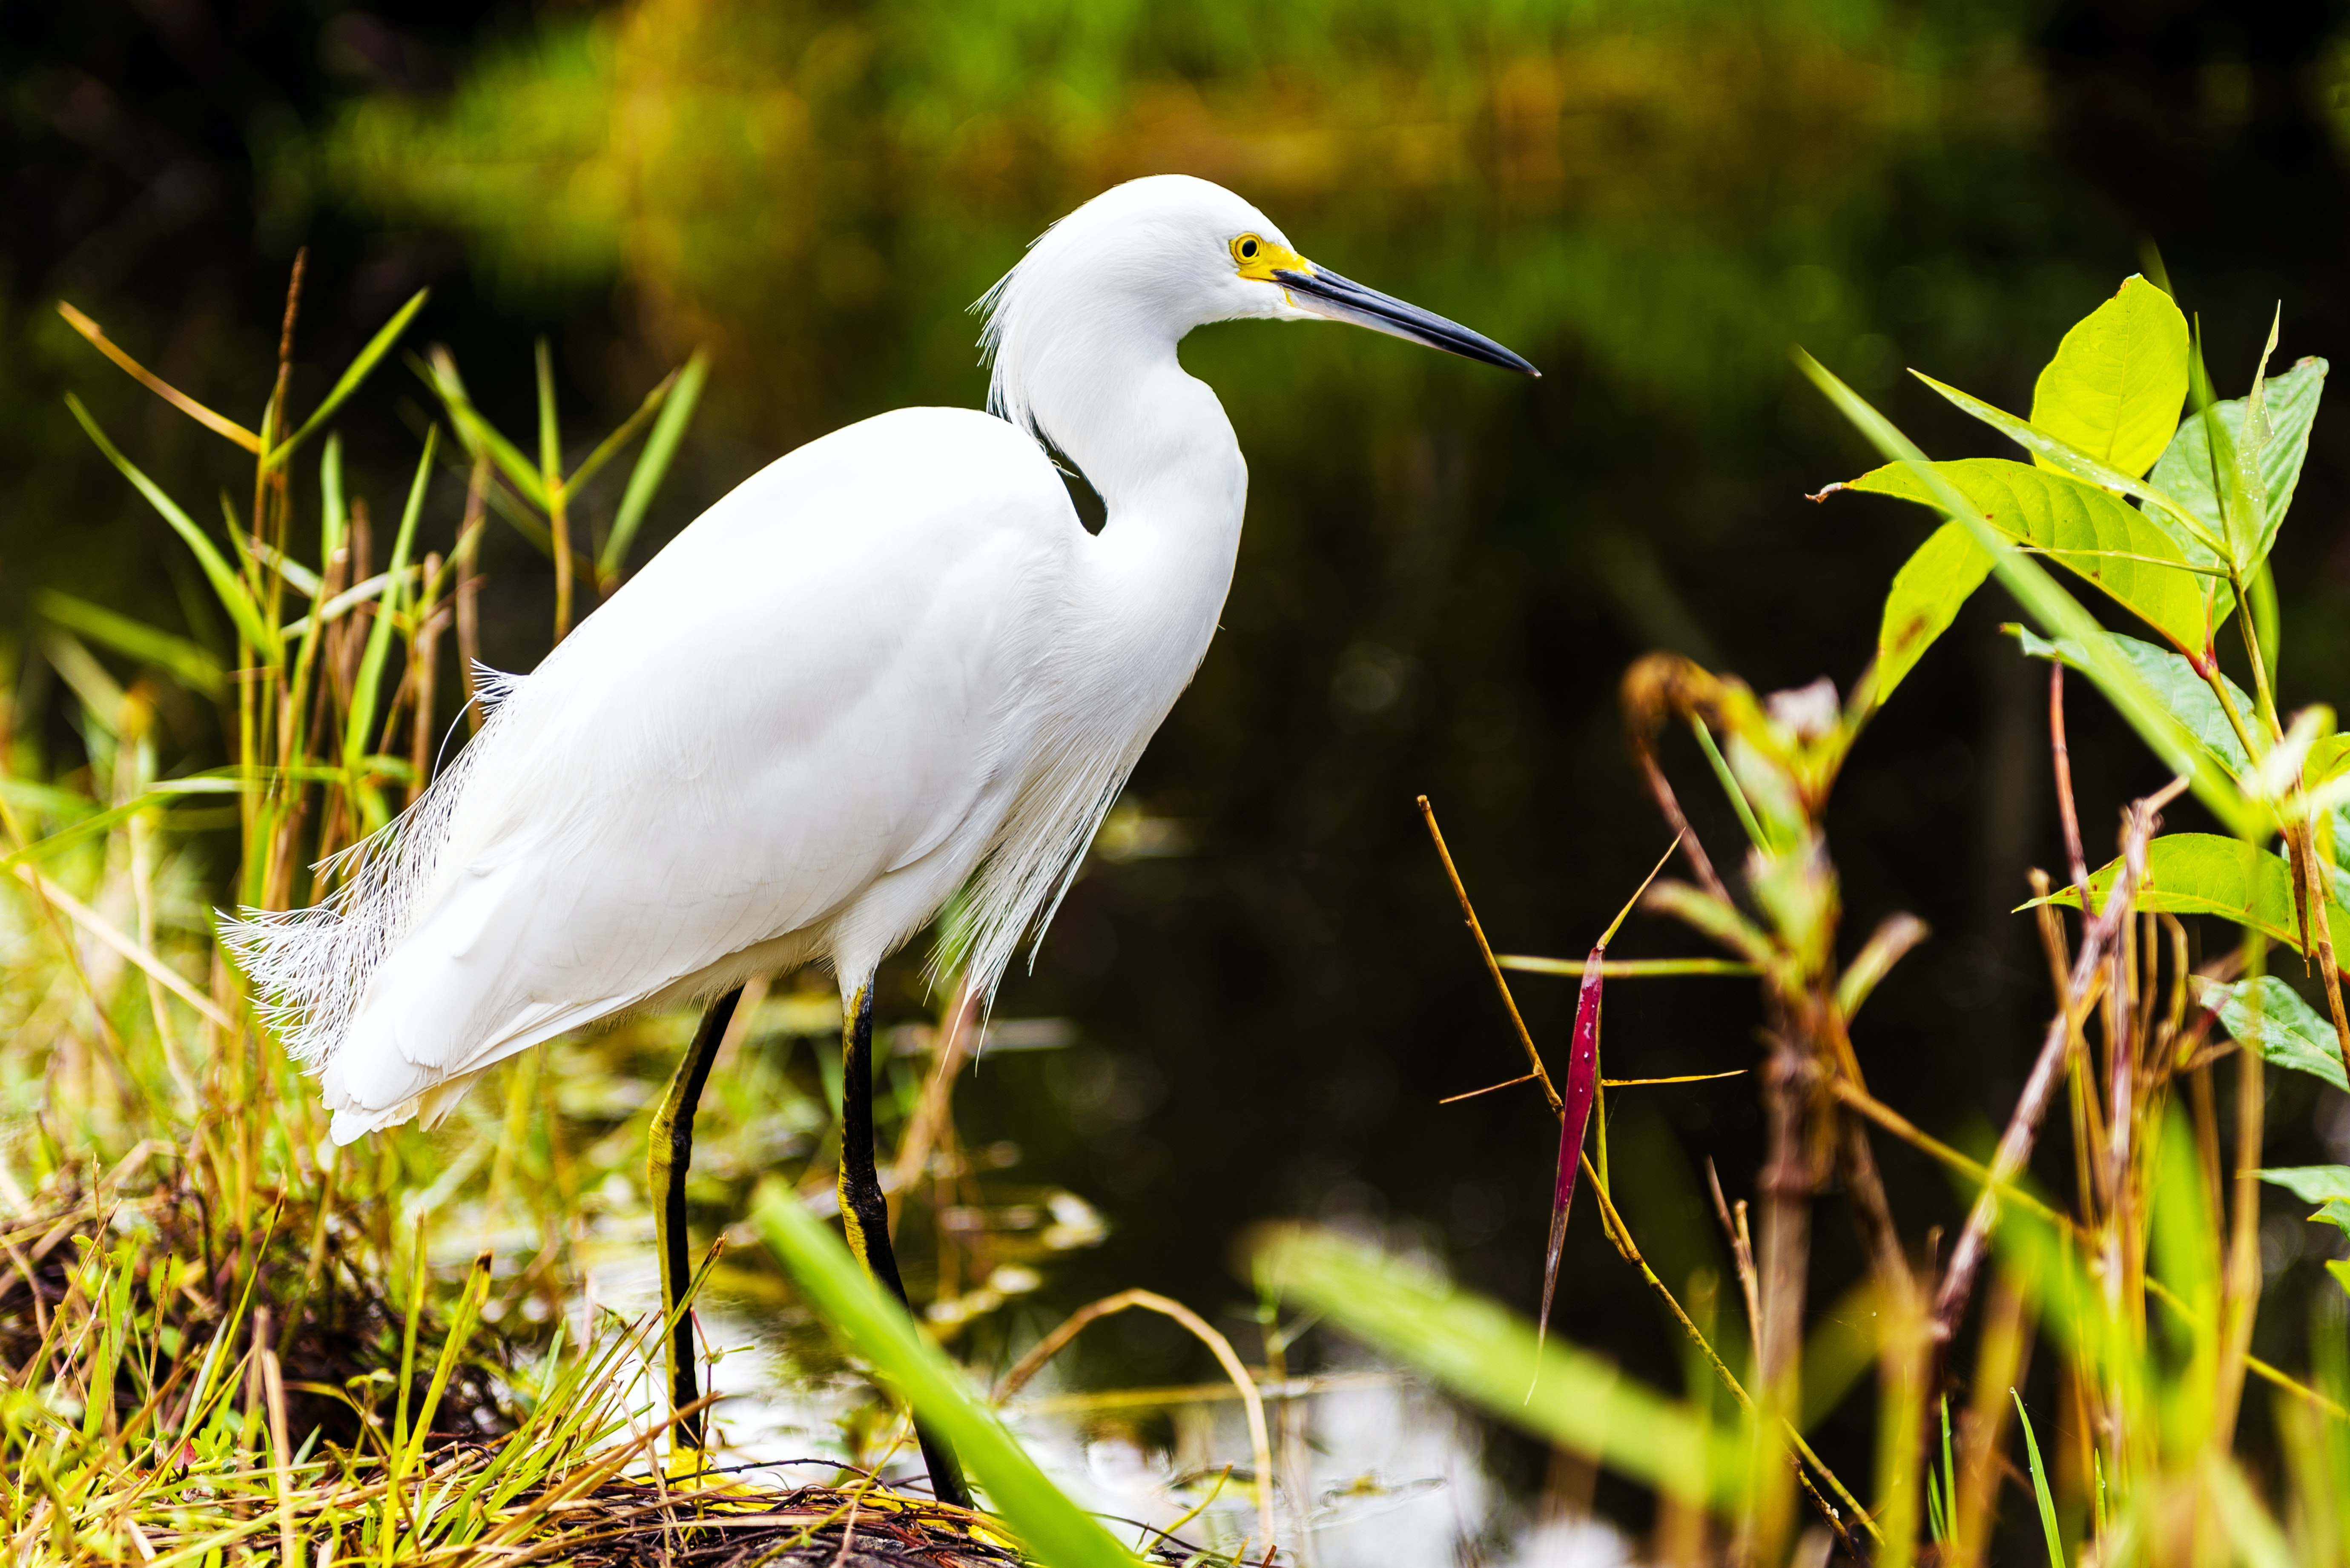 white crane standing on body of water during daytime